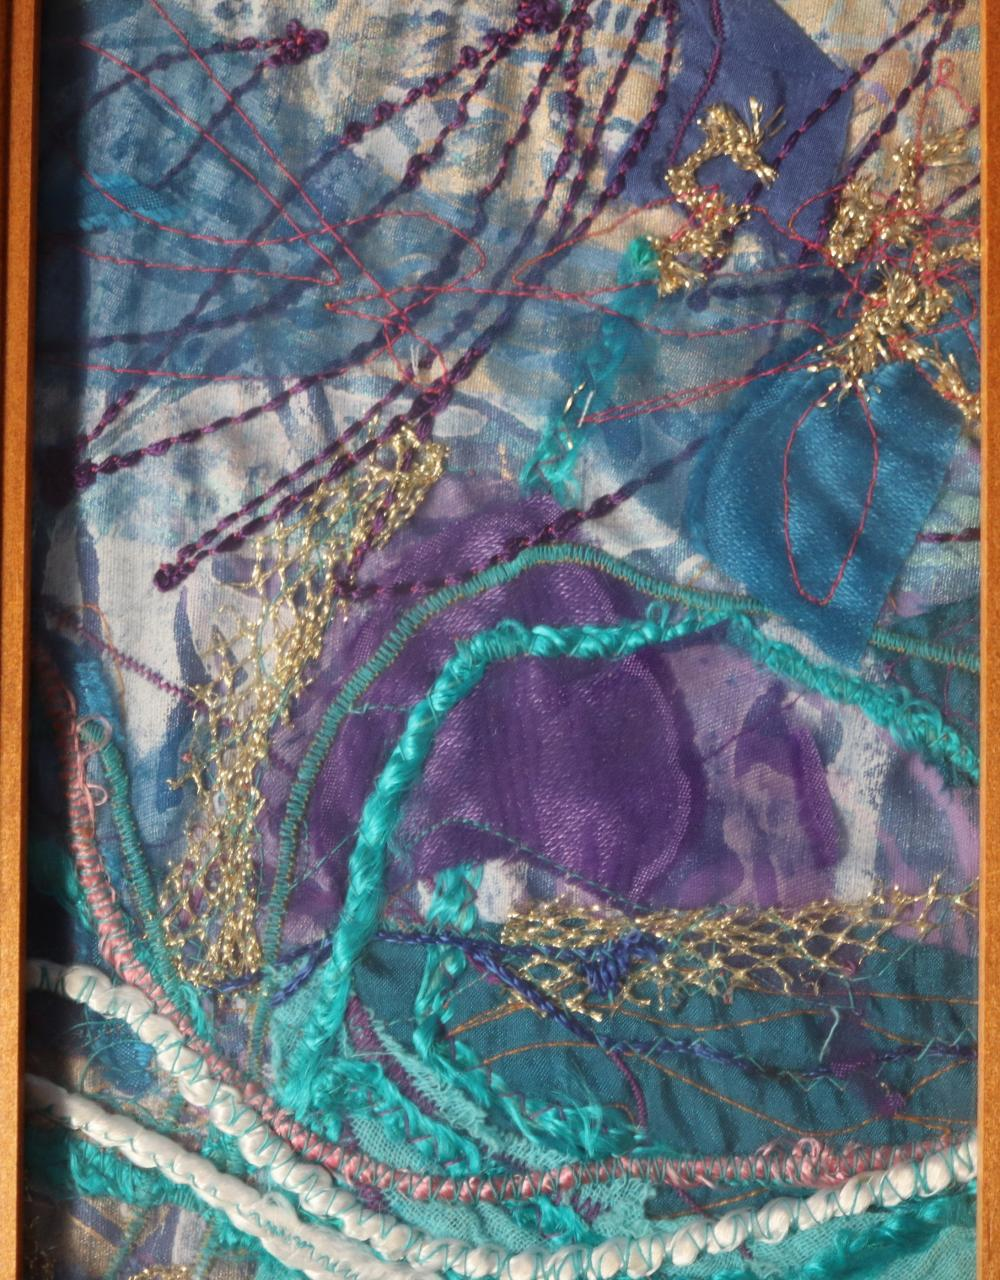 KATHY MACKEY MINOSA DAWN 11 1994 DYED AND PRINTED COTTON AND EMBROIDERY THREAD